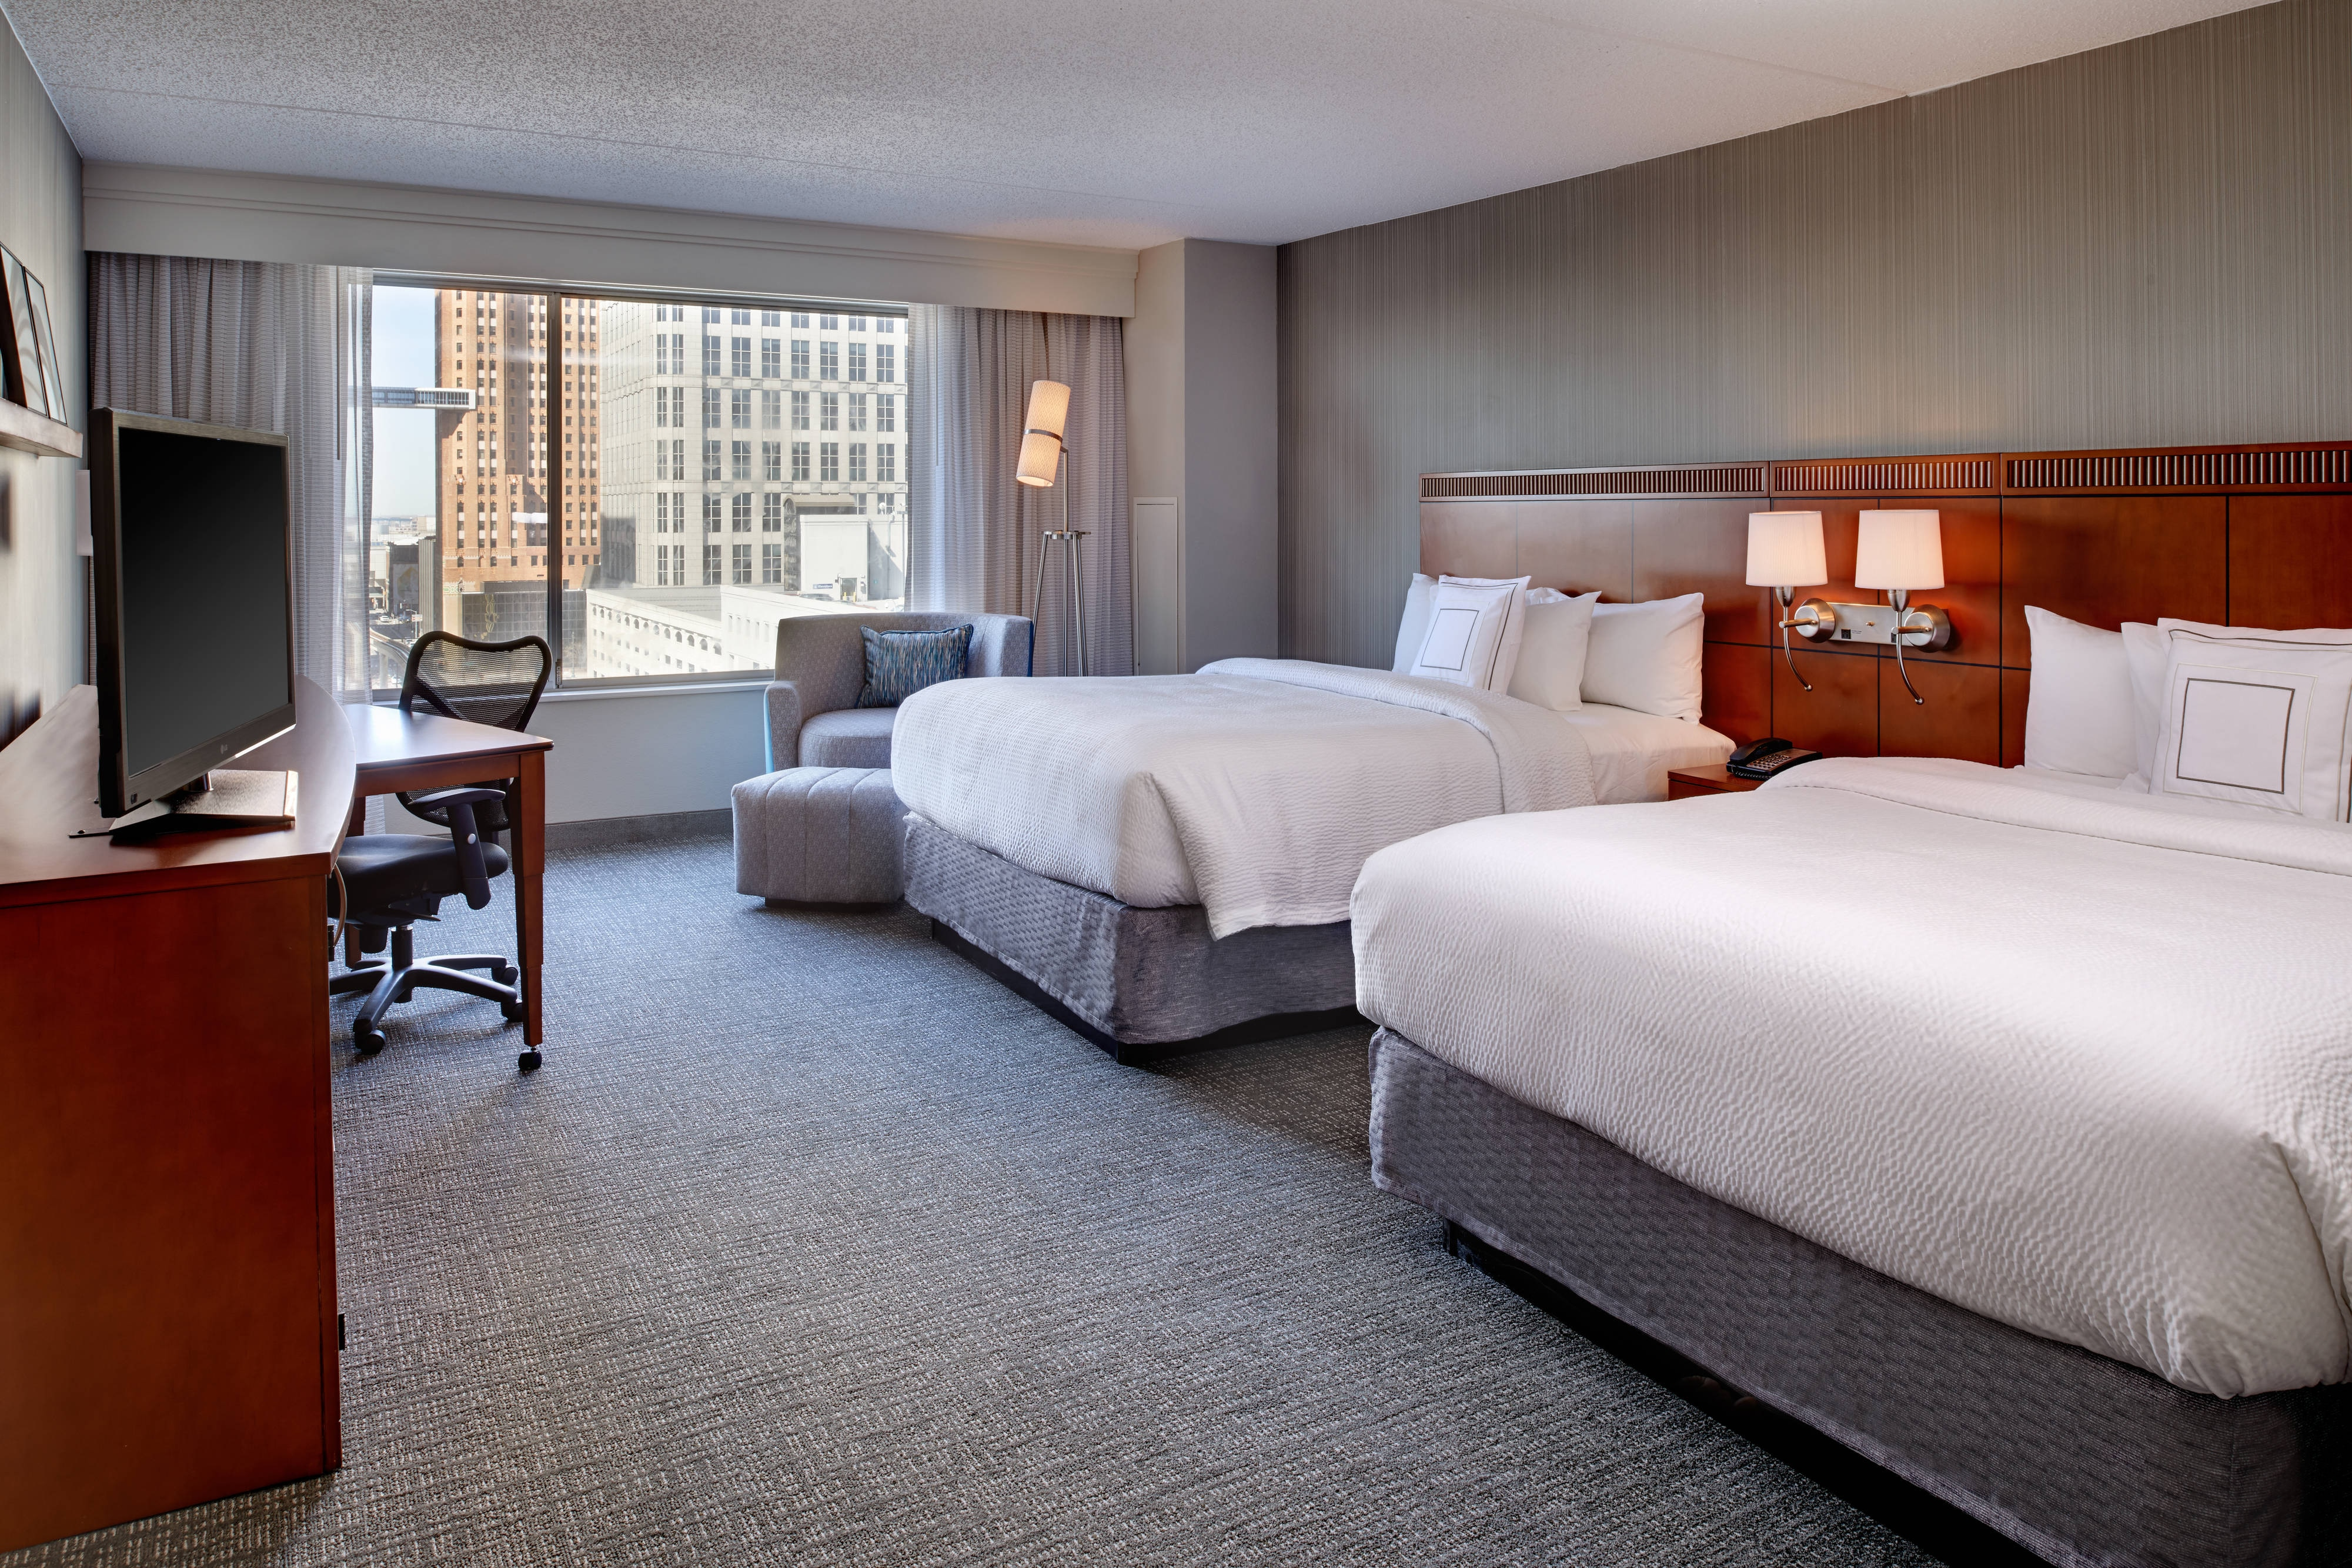 boutique michigan room service rooms the cheap four star near hotel best in king townsend detroit